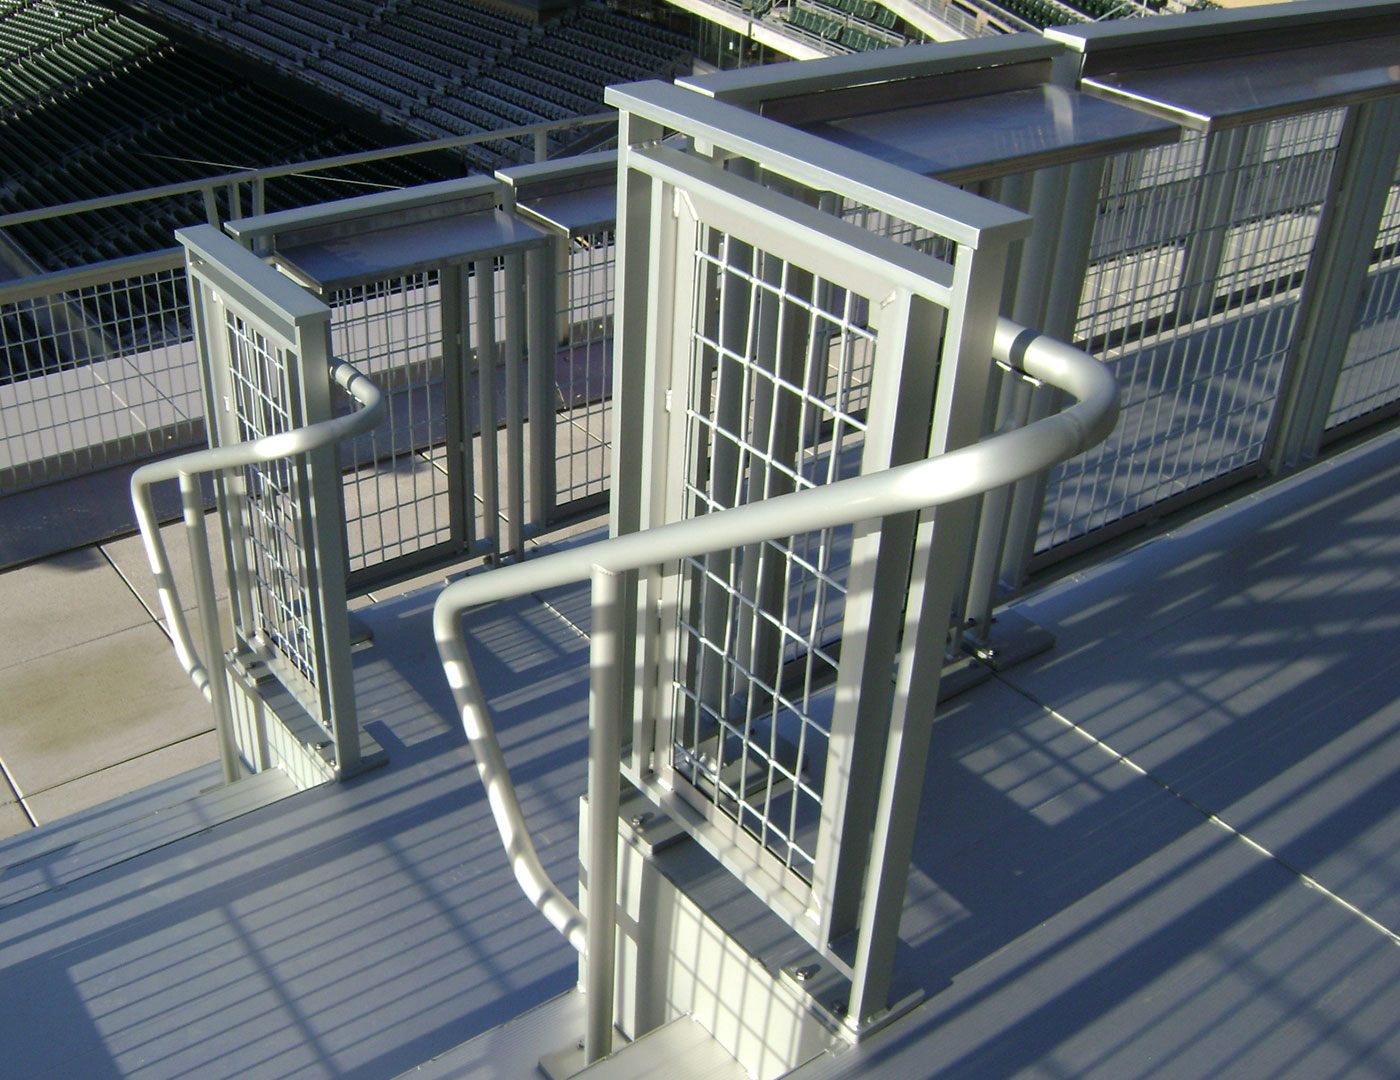 Gidguard mesh railing with drinkrail